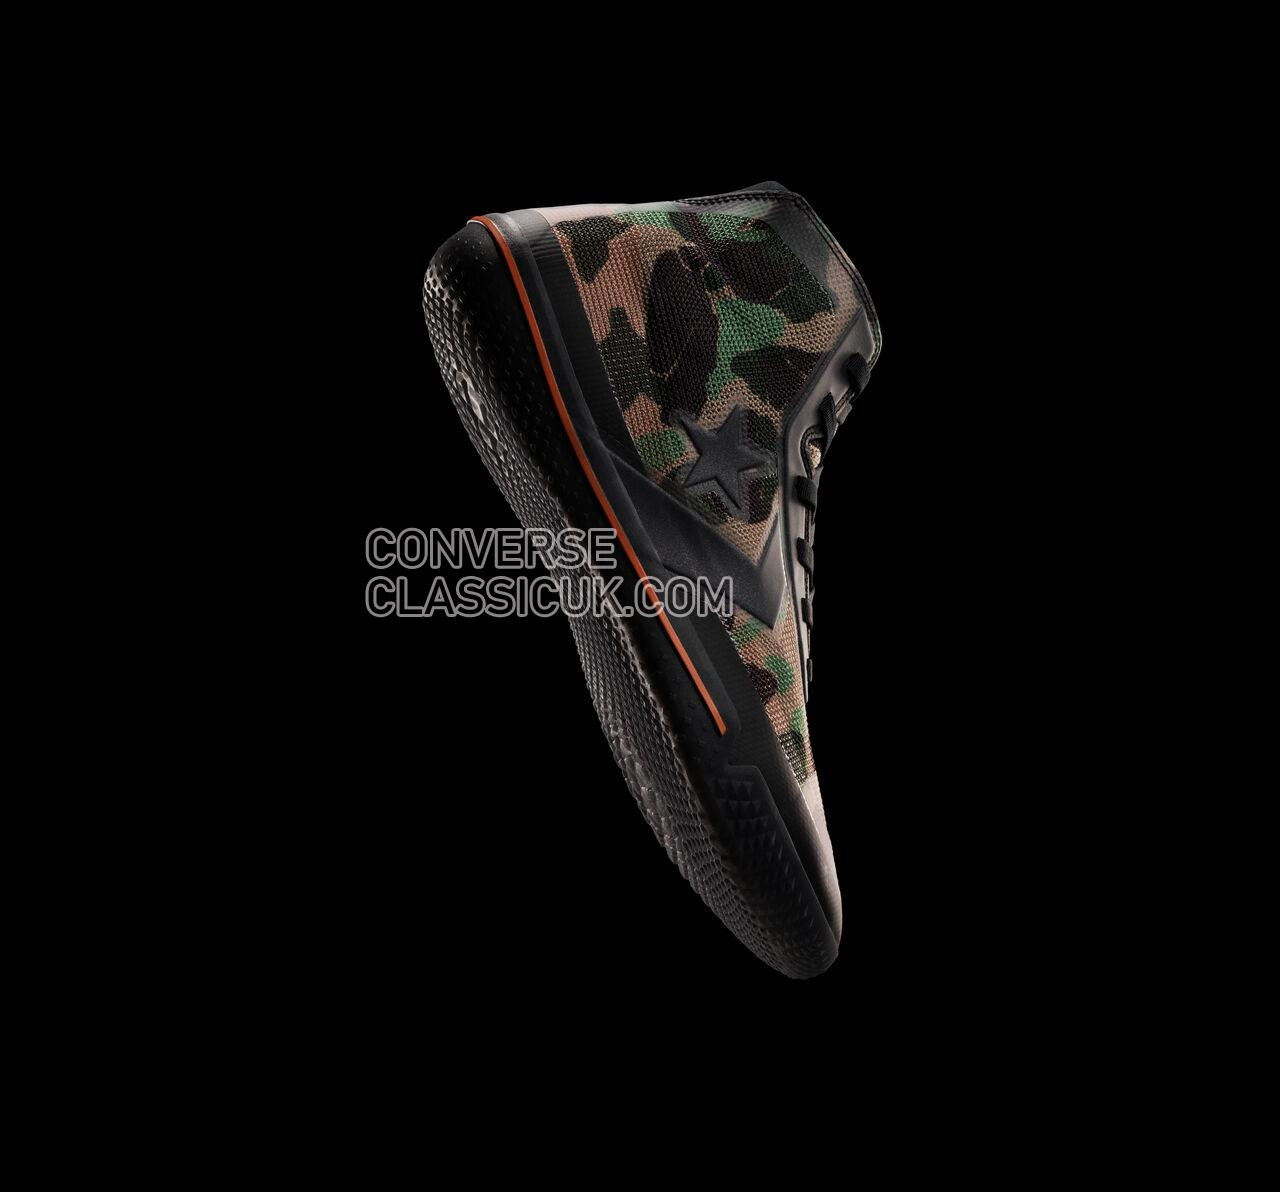 Converse All Star Pro BB Archive Print Mens 166450C Black/Bold Mandarin/Black Shoes